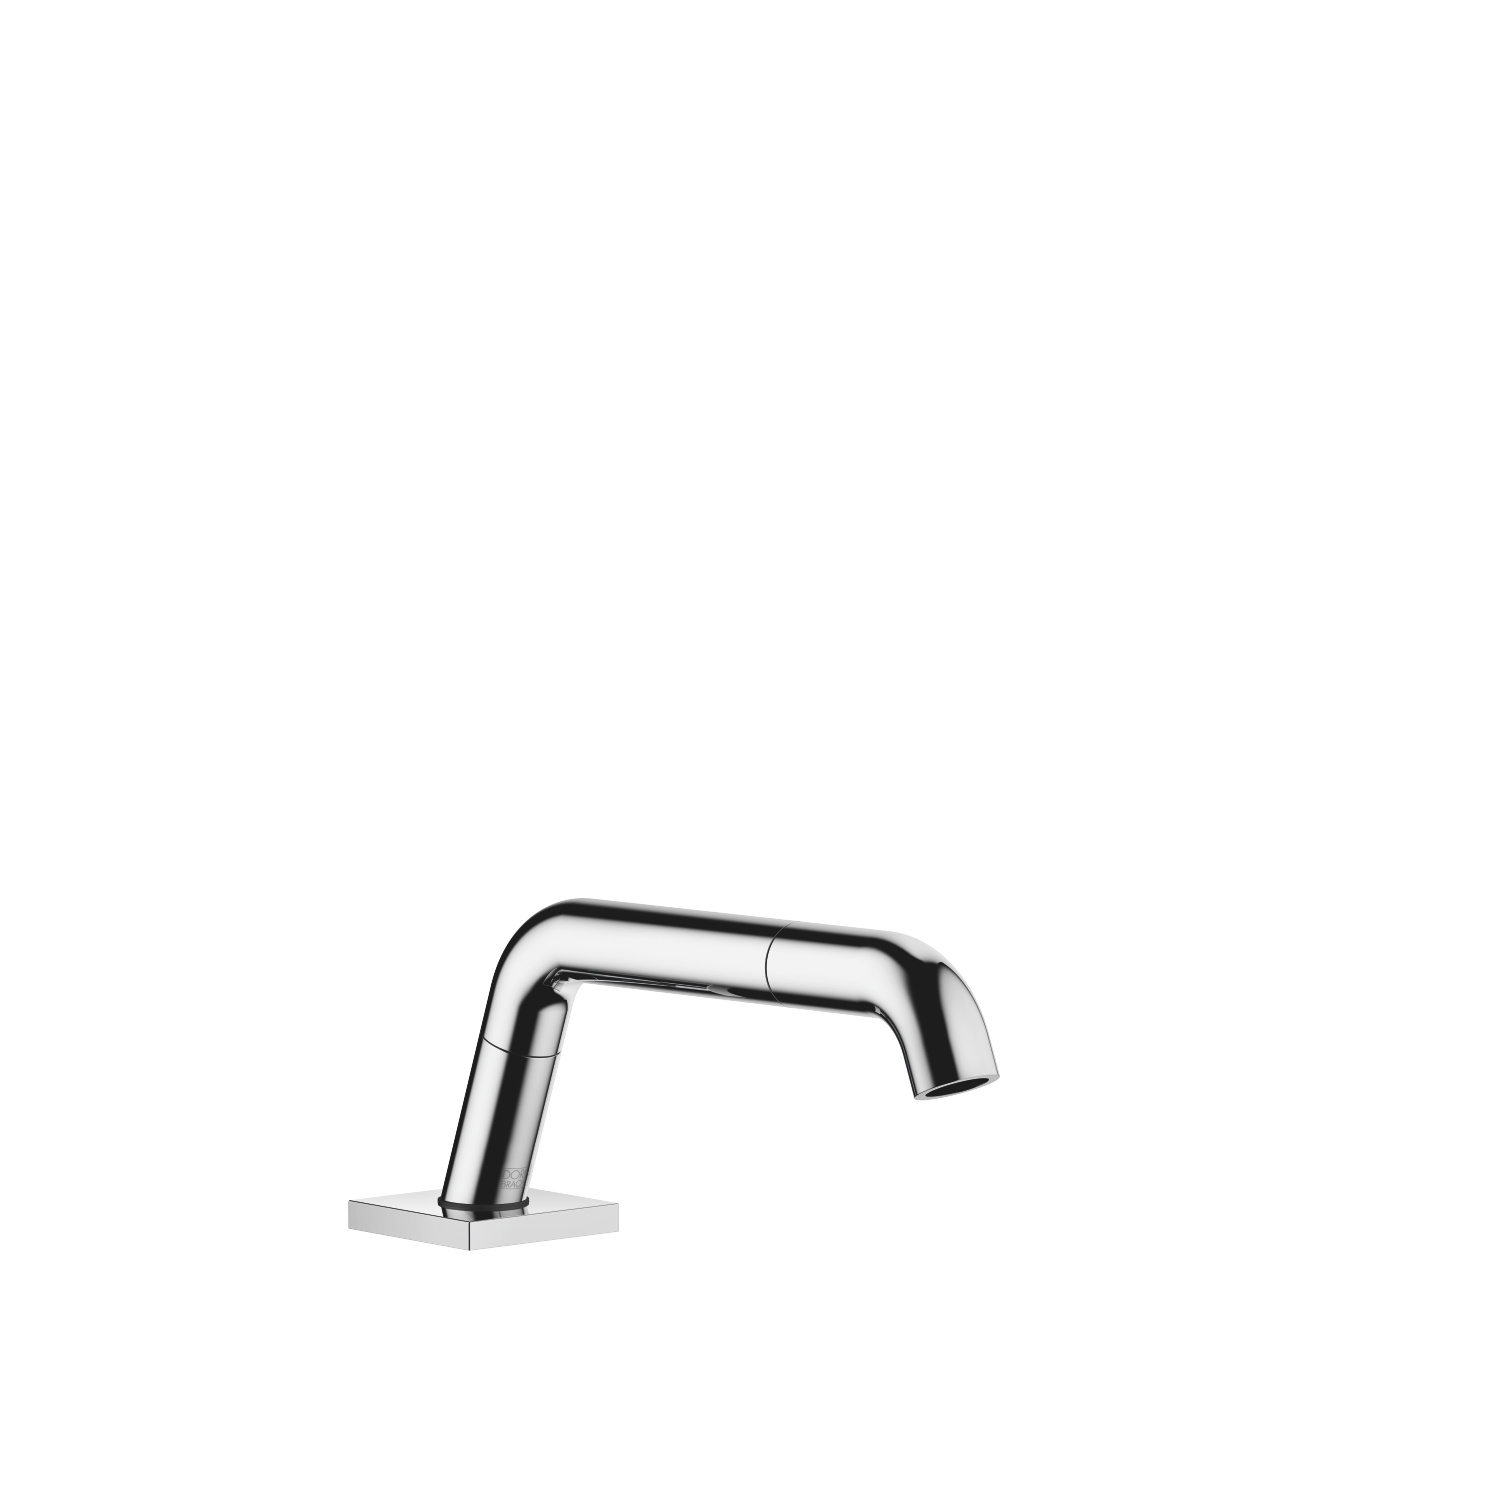 Affusion pipe - polished chrome - 27 728 972-00